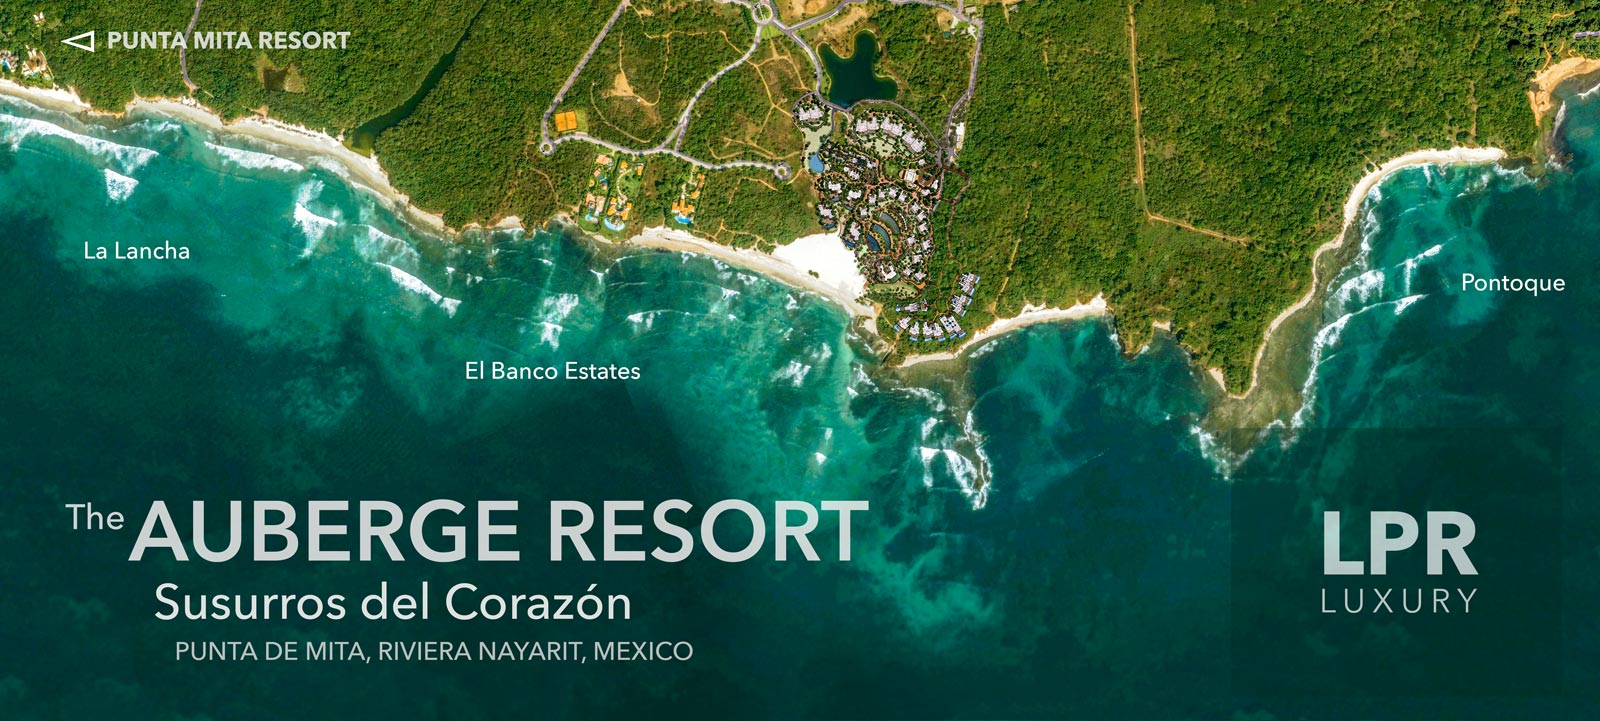 Auberge Resorts - Punta de Mita Susurros del Corazón - Luxury beachfront resort residences for sale - Luxury Real estate North of Puerto Vallarta, Mexico